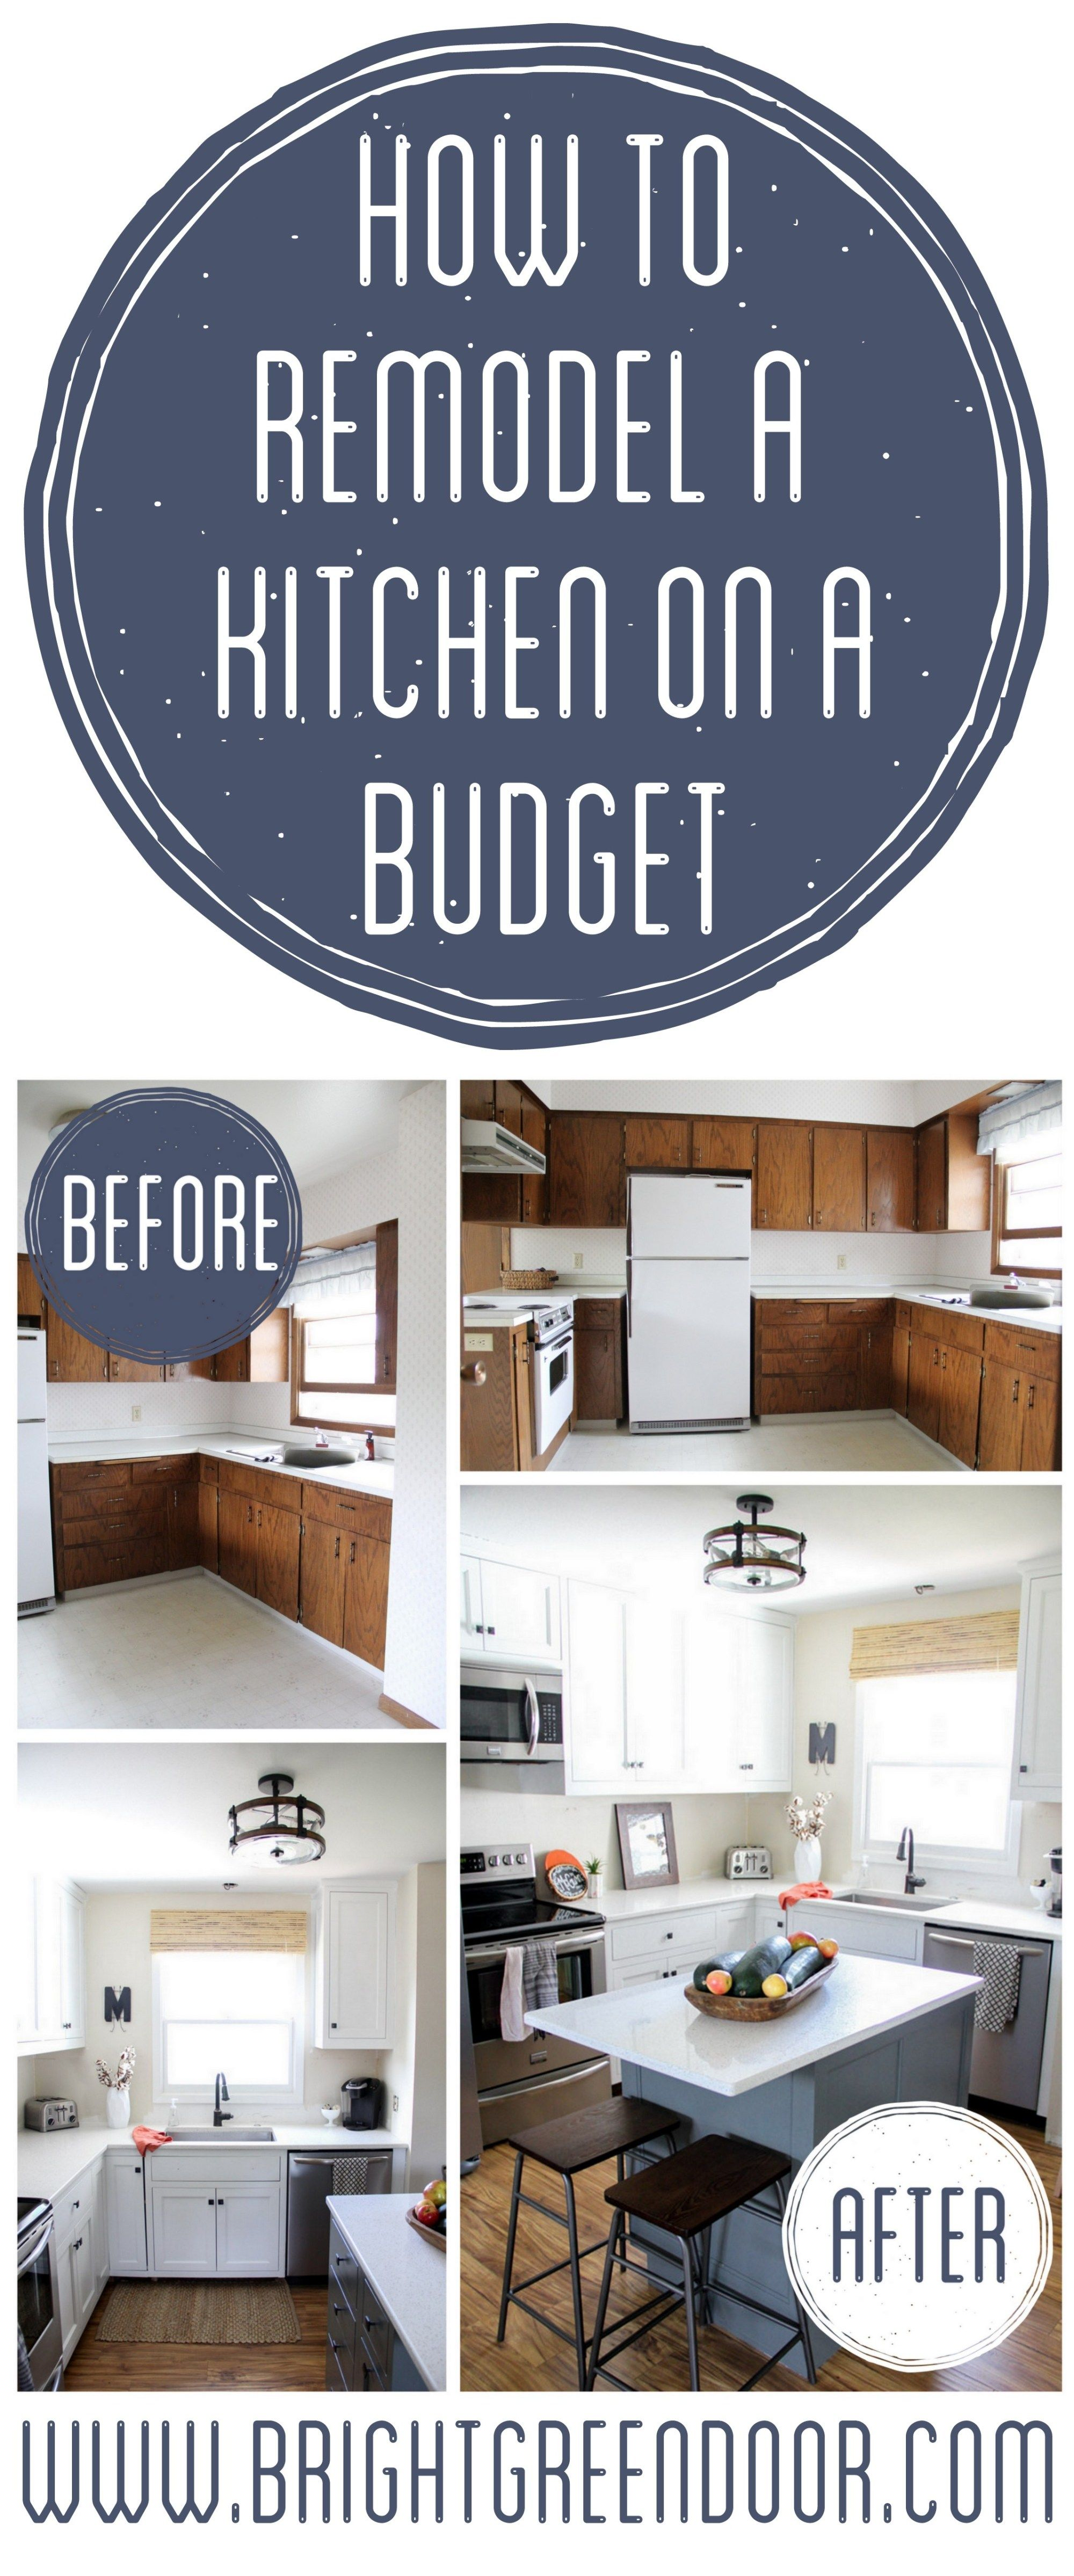 Kitchen Remodel on a Budget | Cheap Home Decor Projects 2 Do ...